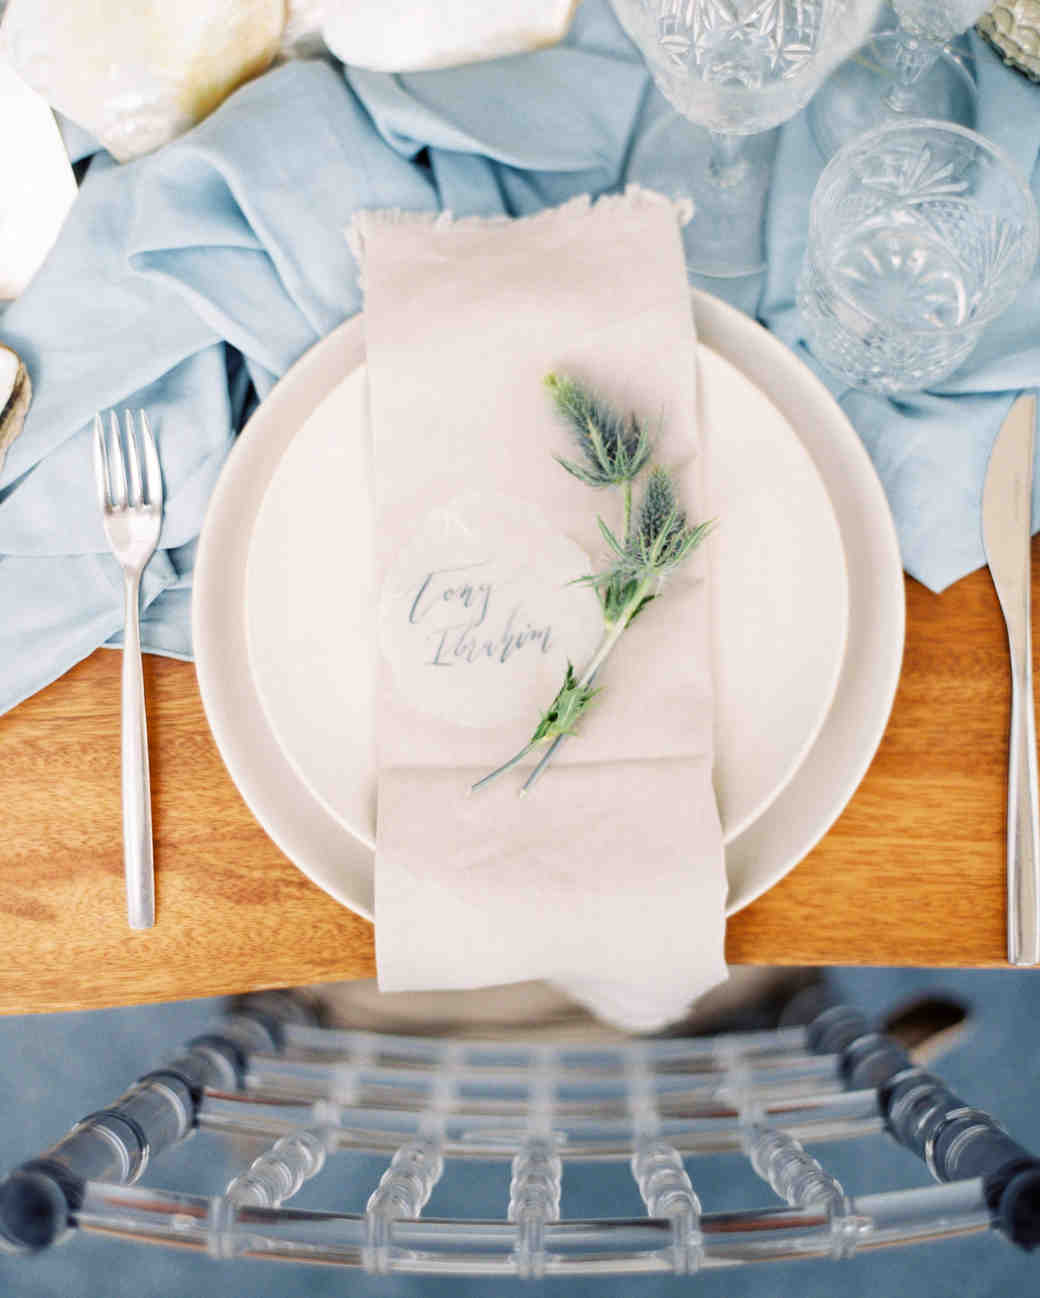 vivi yoga bali wedding ceremony placesetting